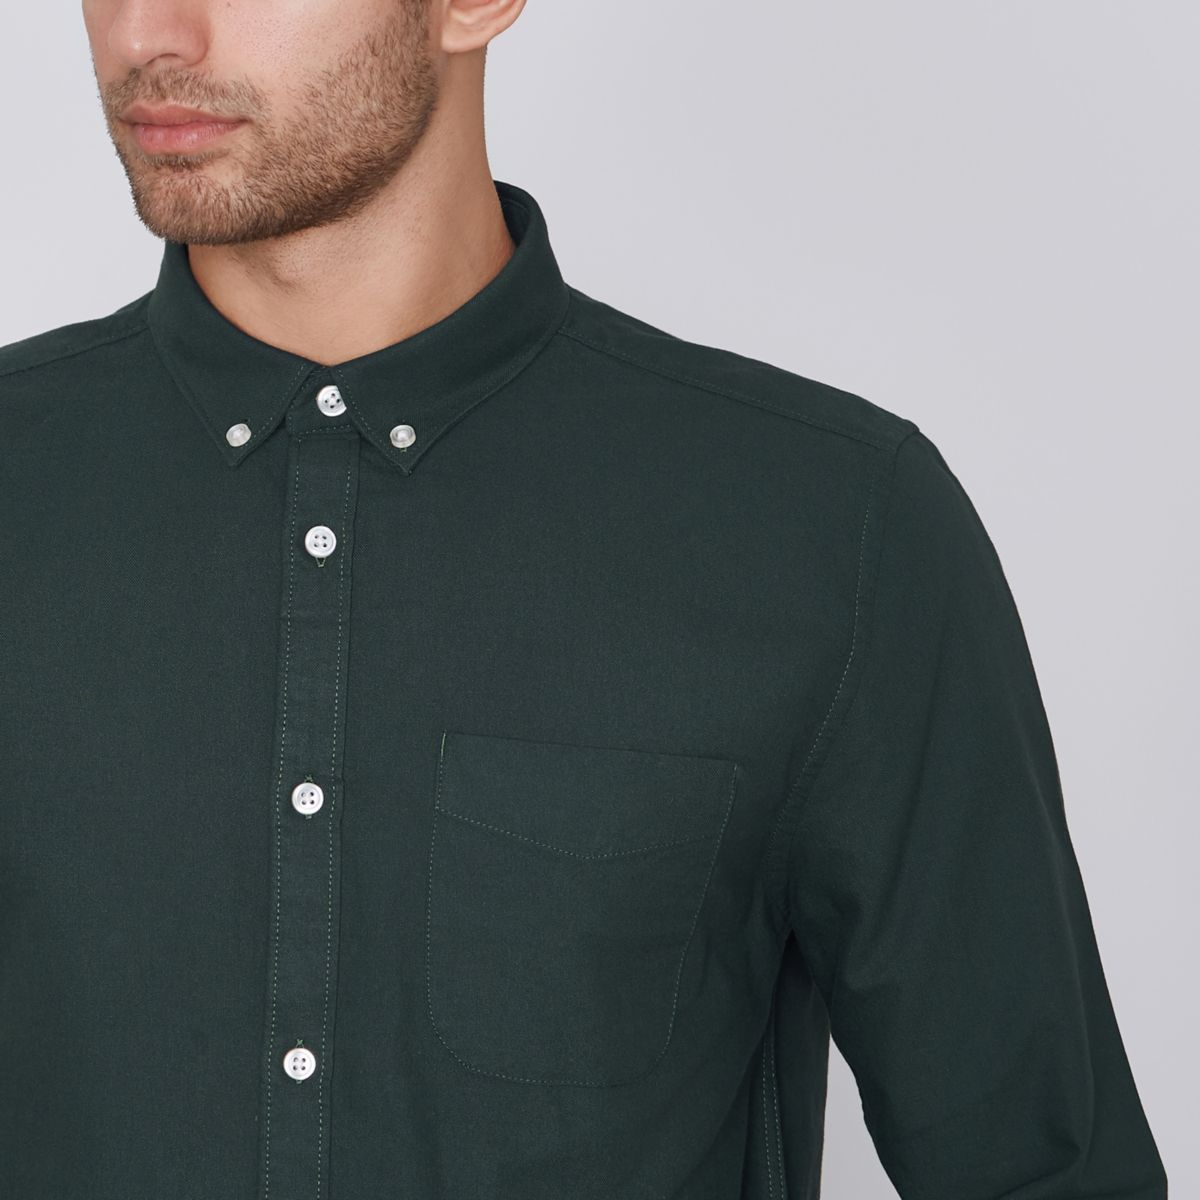 Green long sleeve oxford shirt